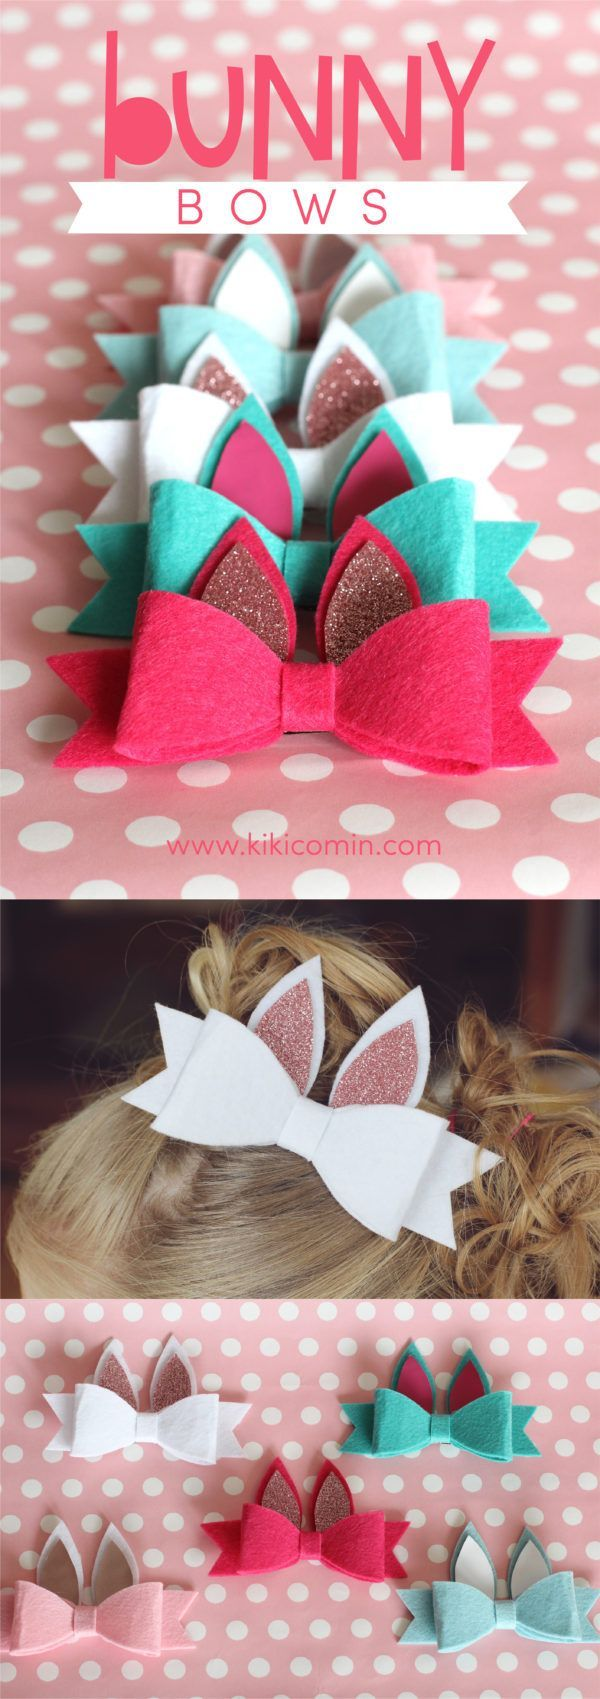 Bunny Bows with Expressions Vinyl #bows